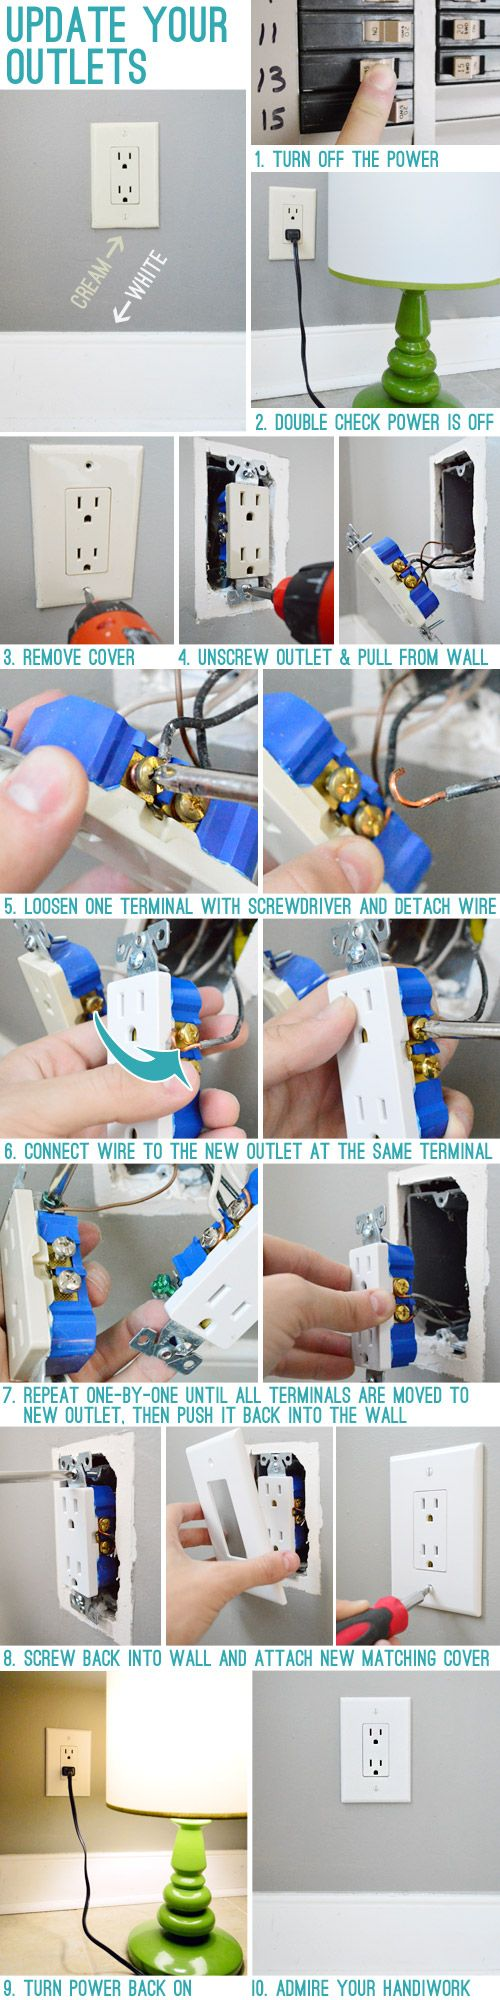 How To Update Your Outlets Step By Pics Dream Home 1970 House Wiring I Am Moving A With Gaudy Gold Faceplates From The 70s And Need This Tutorial For Myself